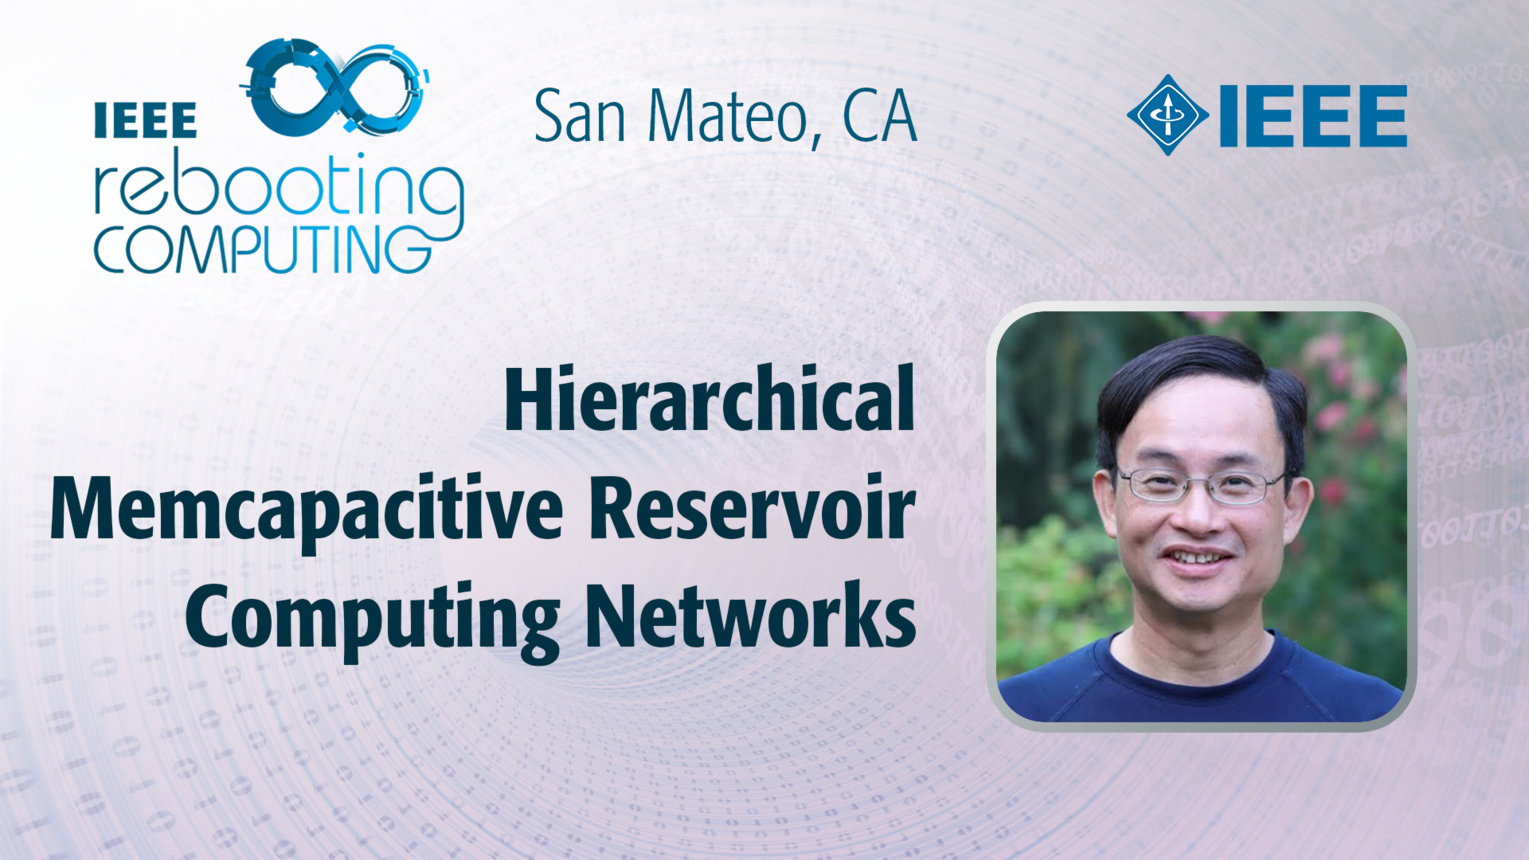 Hierarchical Memcapacitive Reservoir Computing Networks - Dat Tran - ICRC San Mateo, 2019